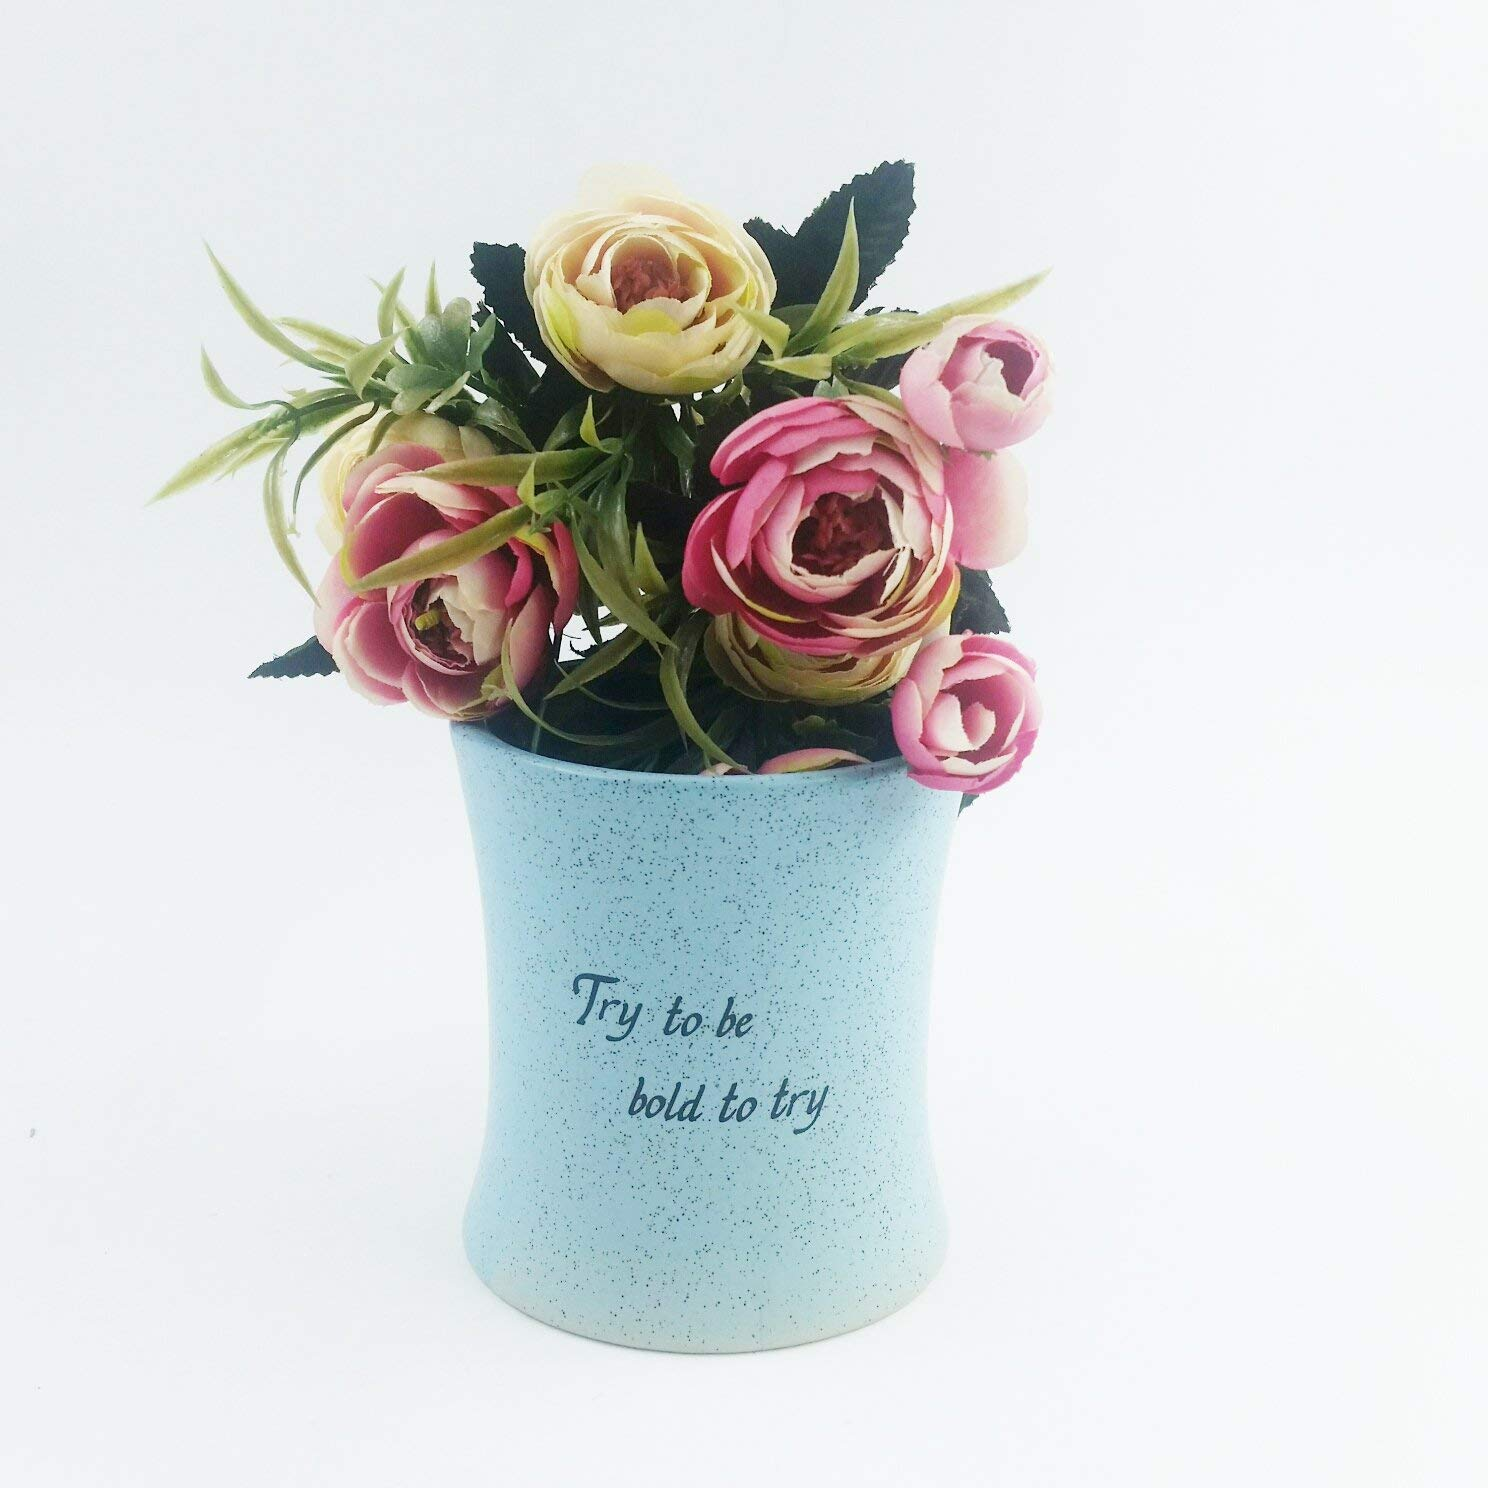 Better-Way Ceramic Vintage Planter Elegant Pots Decorative Vases Flower Floral Container for Indoor Plants Succulents, Orchid Flowers, Herbs 3.3 inch (Shabby Chic, Blue)